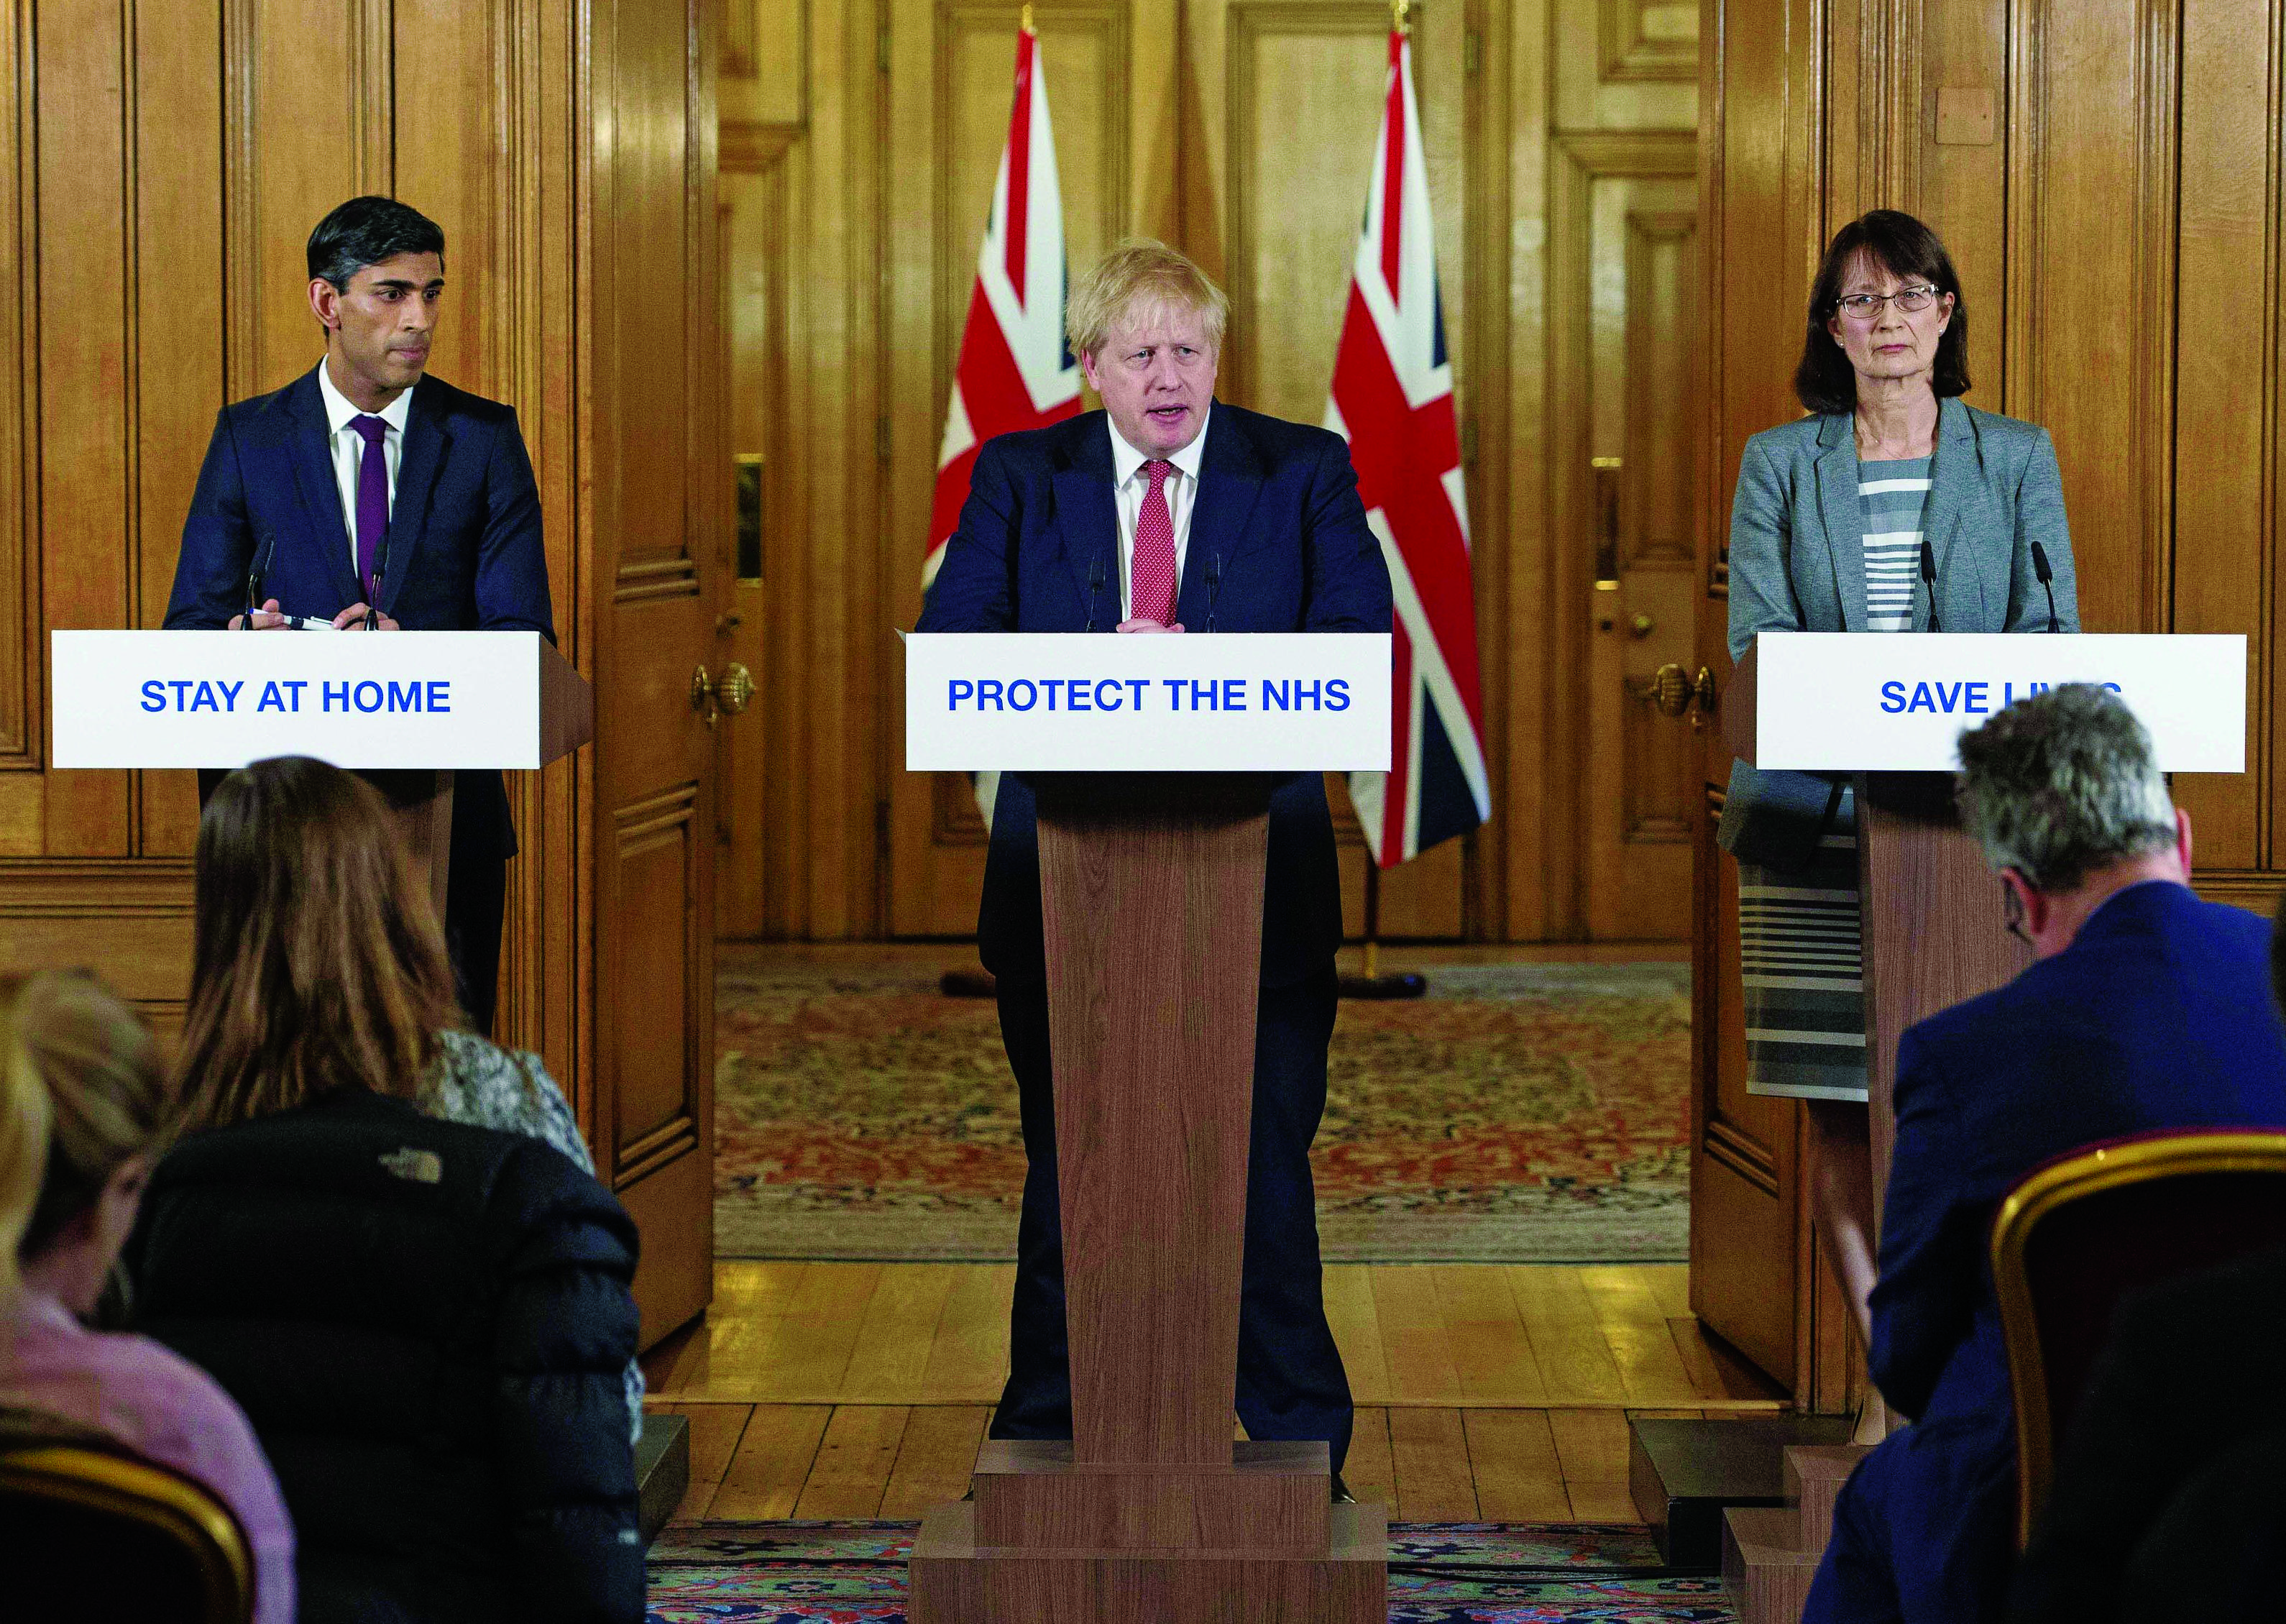 Euan McColm: Virus can't kill politics, but it will never be the same again